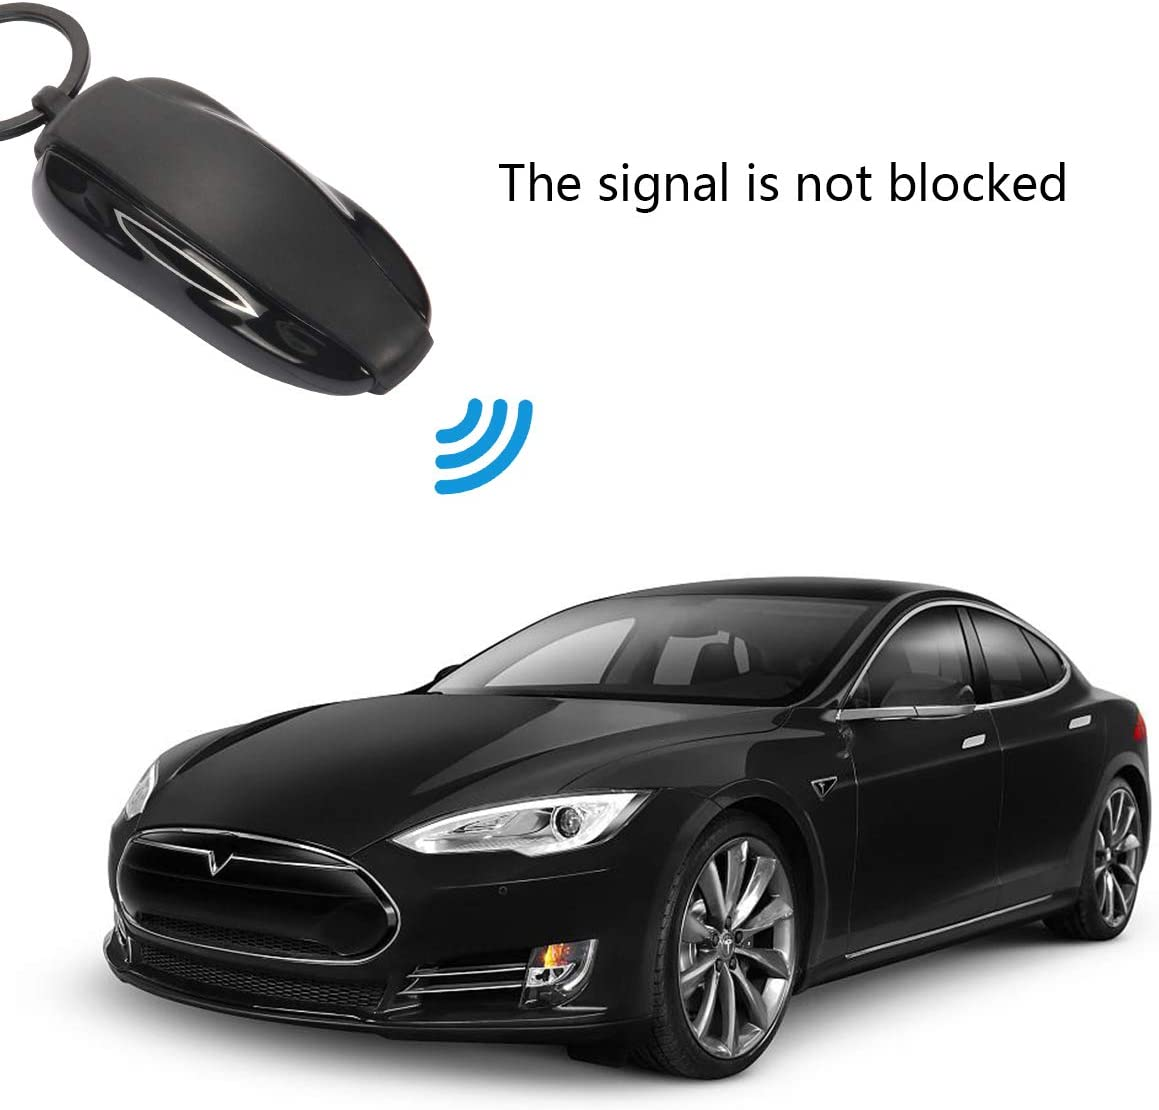 DeCuLo Key Fob Cover for Tesla Model X Silicone Car Key Cover Shell Protector Case Holder for Tesla X Accessories Black, Model X